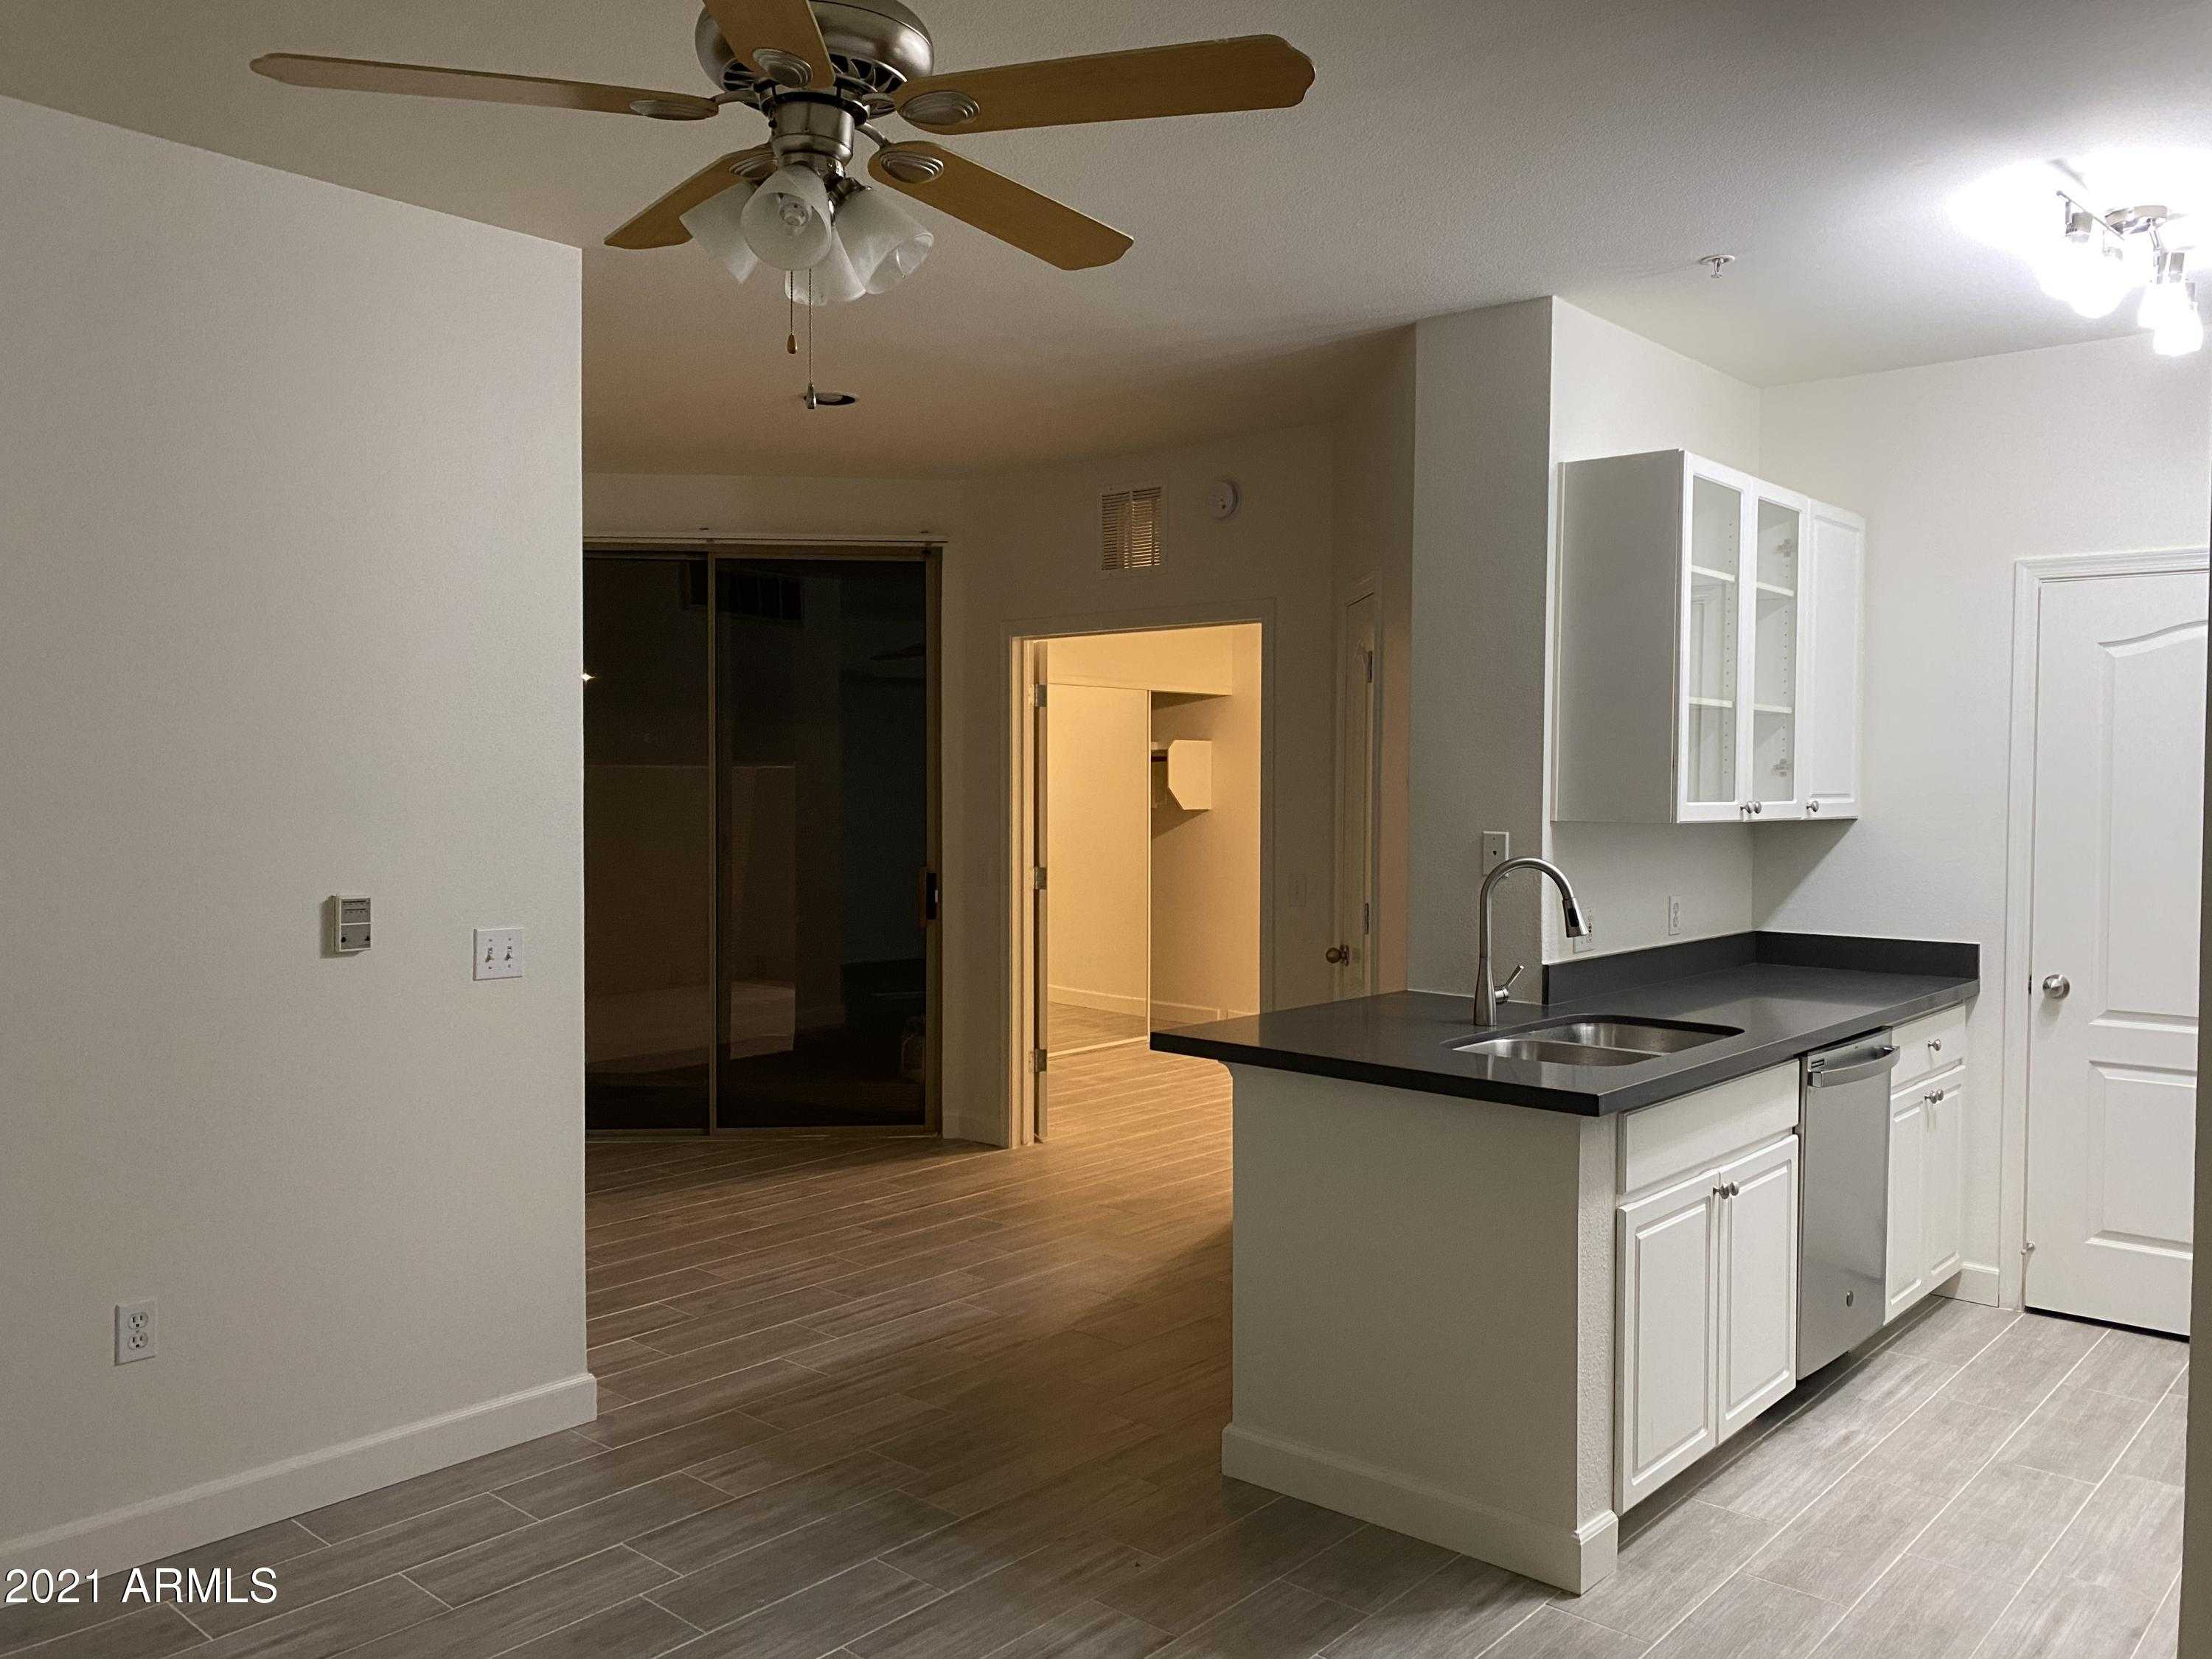 $245,000 - 2Br/2Ba -  for Sale in Biltmore Square Condominiums, Phoenix